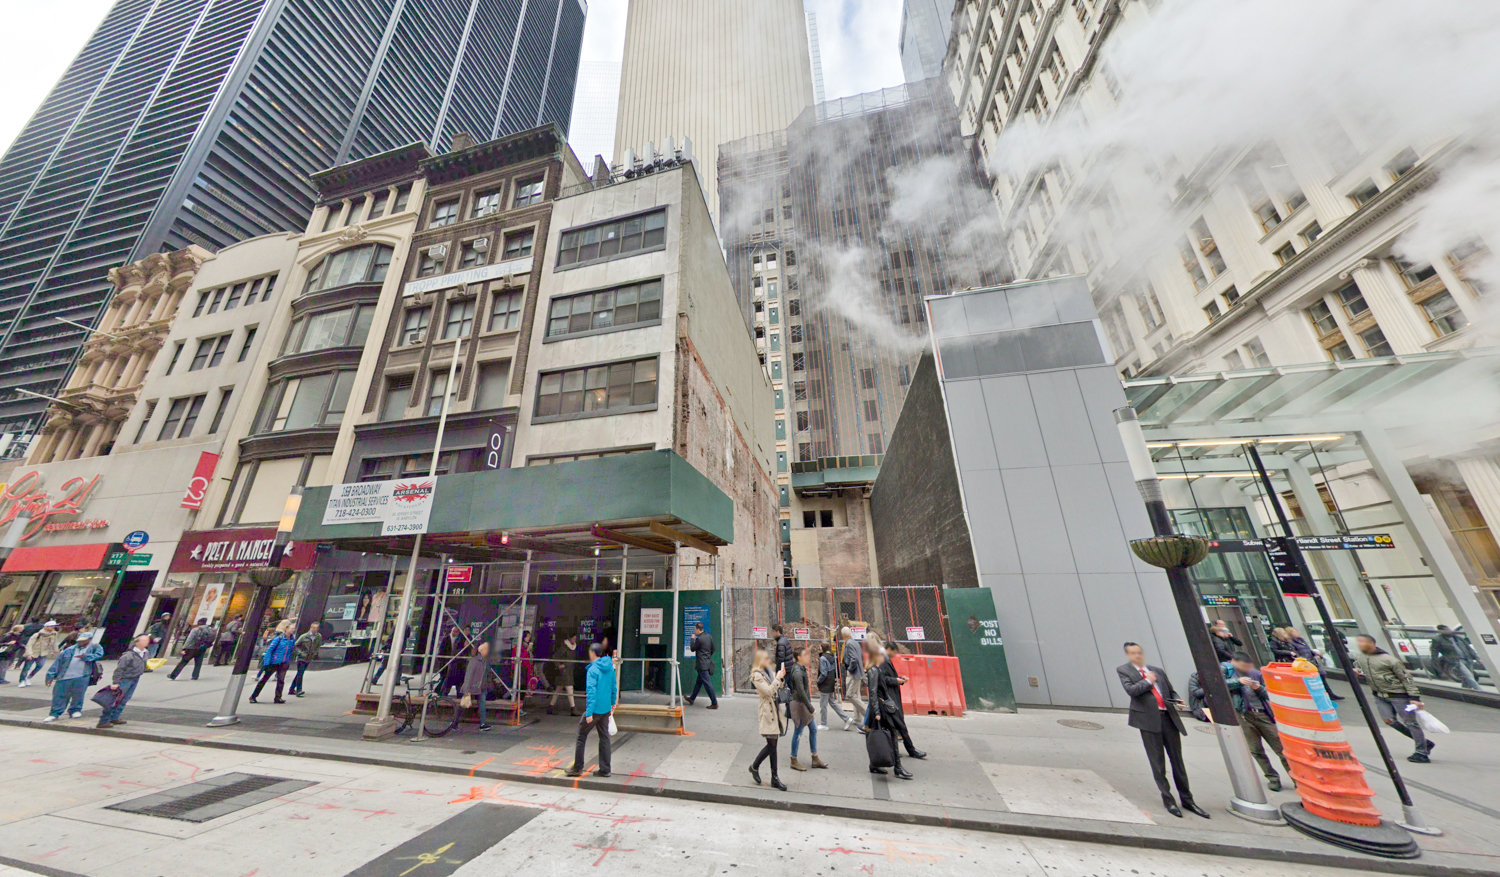 185 Broadway, via Google Maps